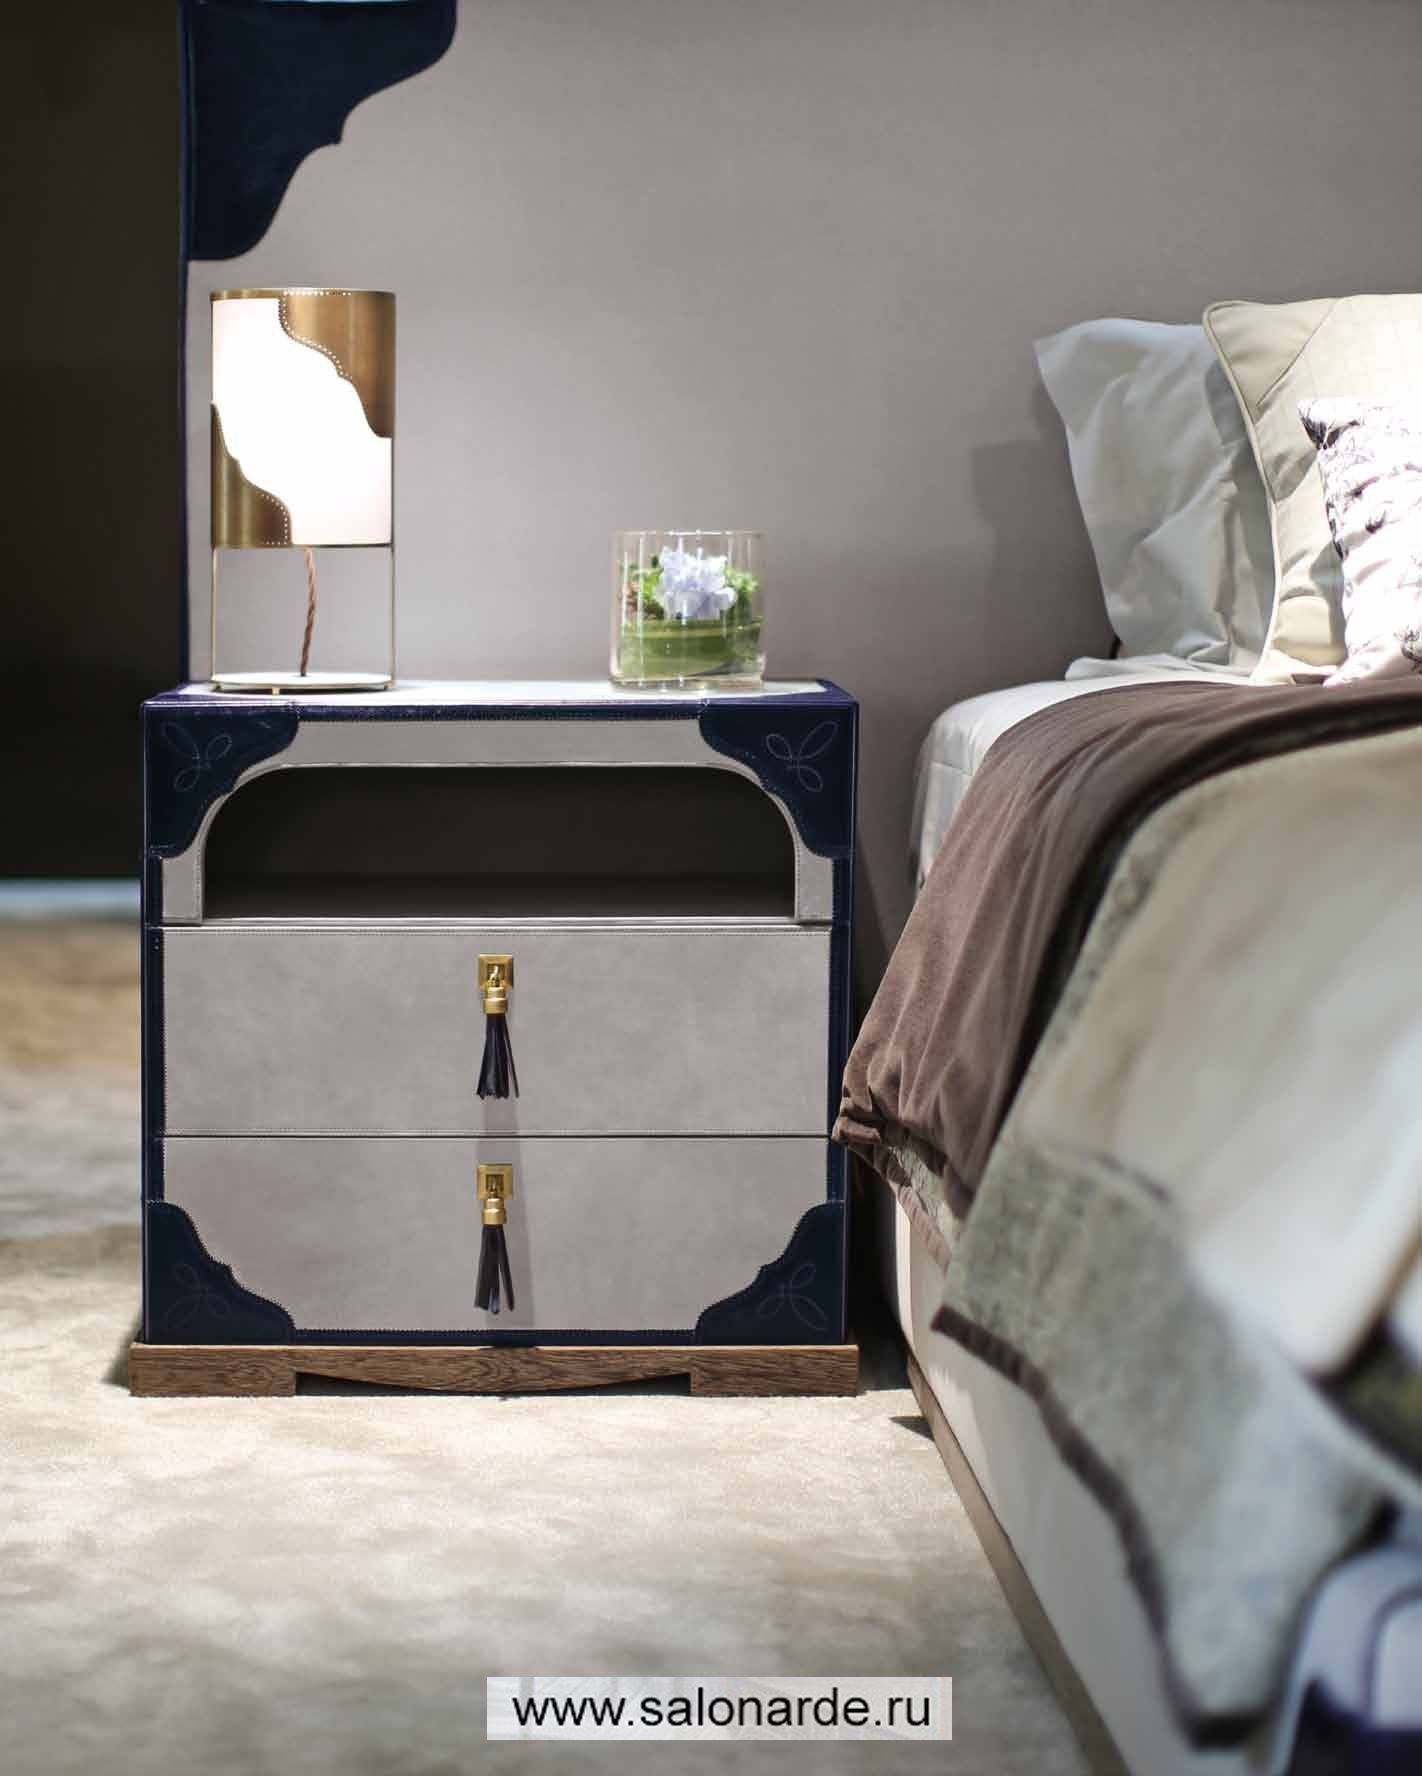 trend bedroom furniture italian. Ludovica Best Selection Of Furniture Design At Salone De Mobile Milan Don\u0027t Miss This Week And Feel More Italian Fuori Milano With The Bes Trend Bedroom